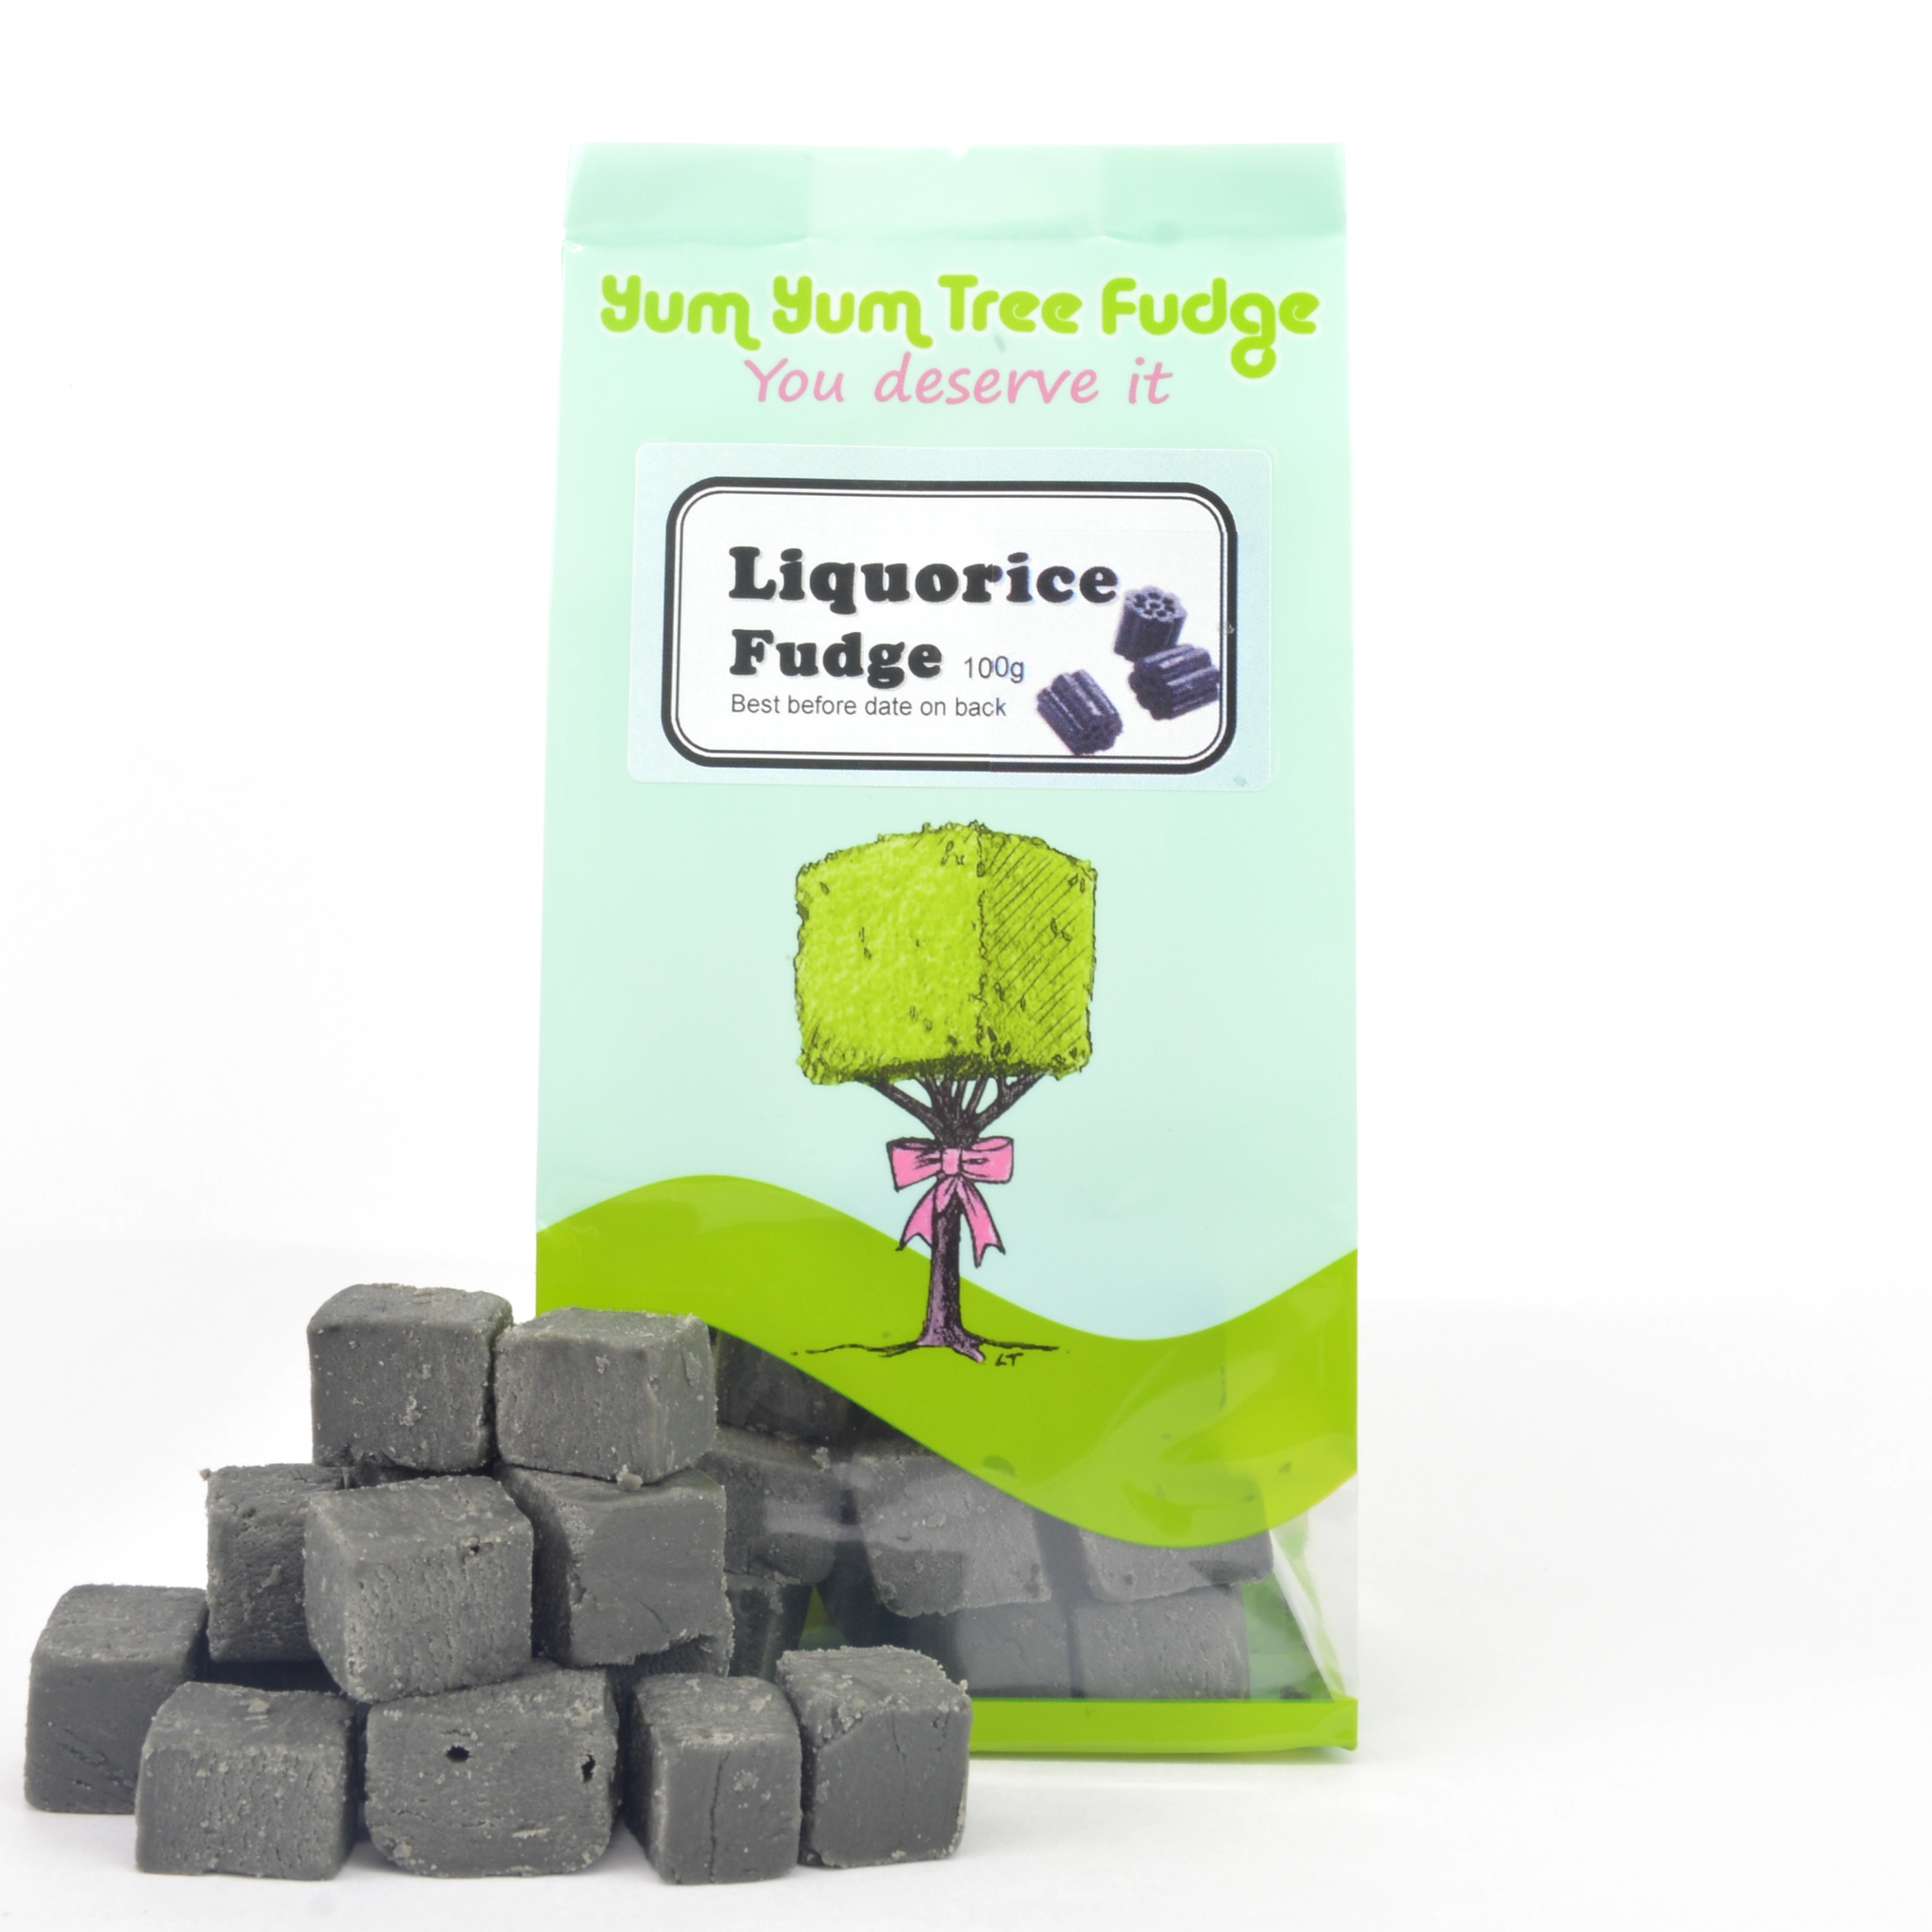 Liquorice Fudge by Yum Yum Tree Fudge